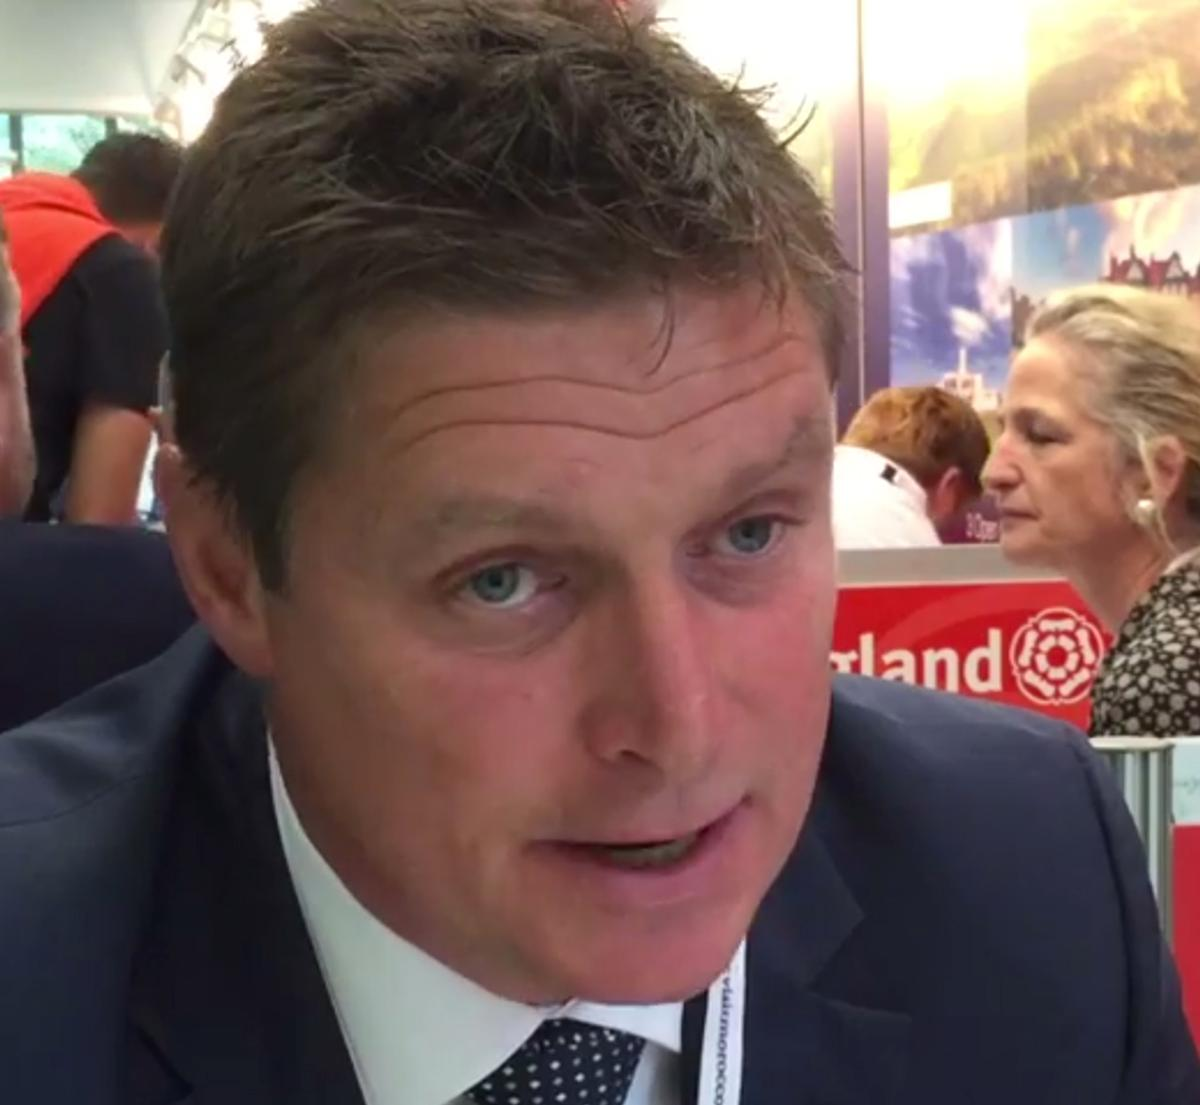 Golf Tourism England CEO Andrew Cooke aims to emulate the success of countries like Scotland and Ireland / Youtube